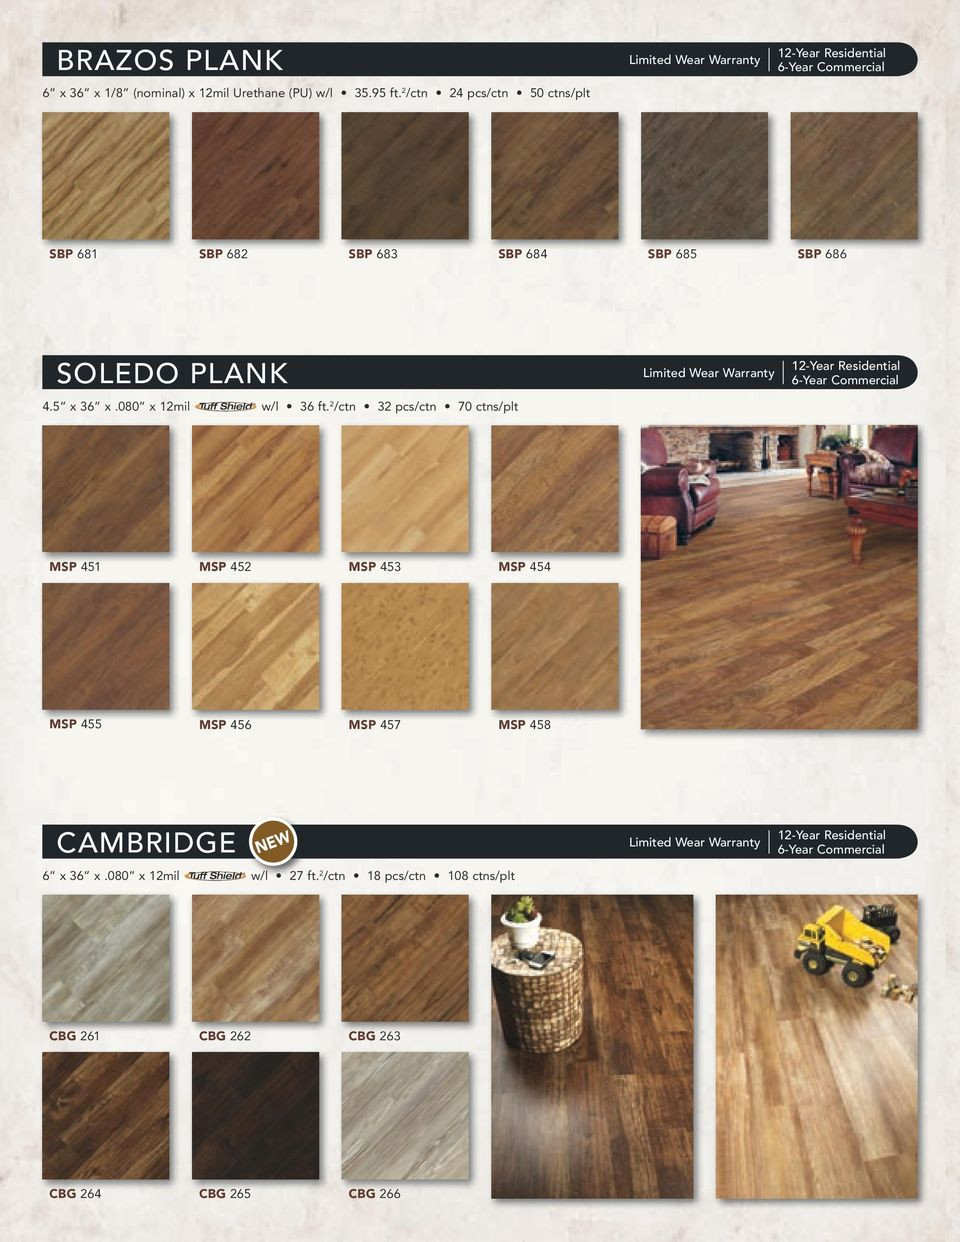 mohawk hardwood and laminate floor cleaner msds of luxury vinyl tile plank pdf within 080 x 12mil w l 36 ft